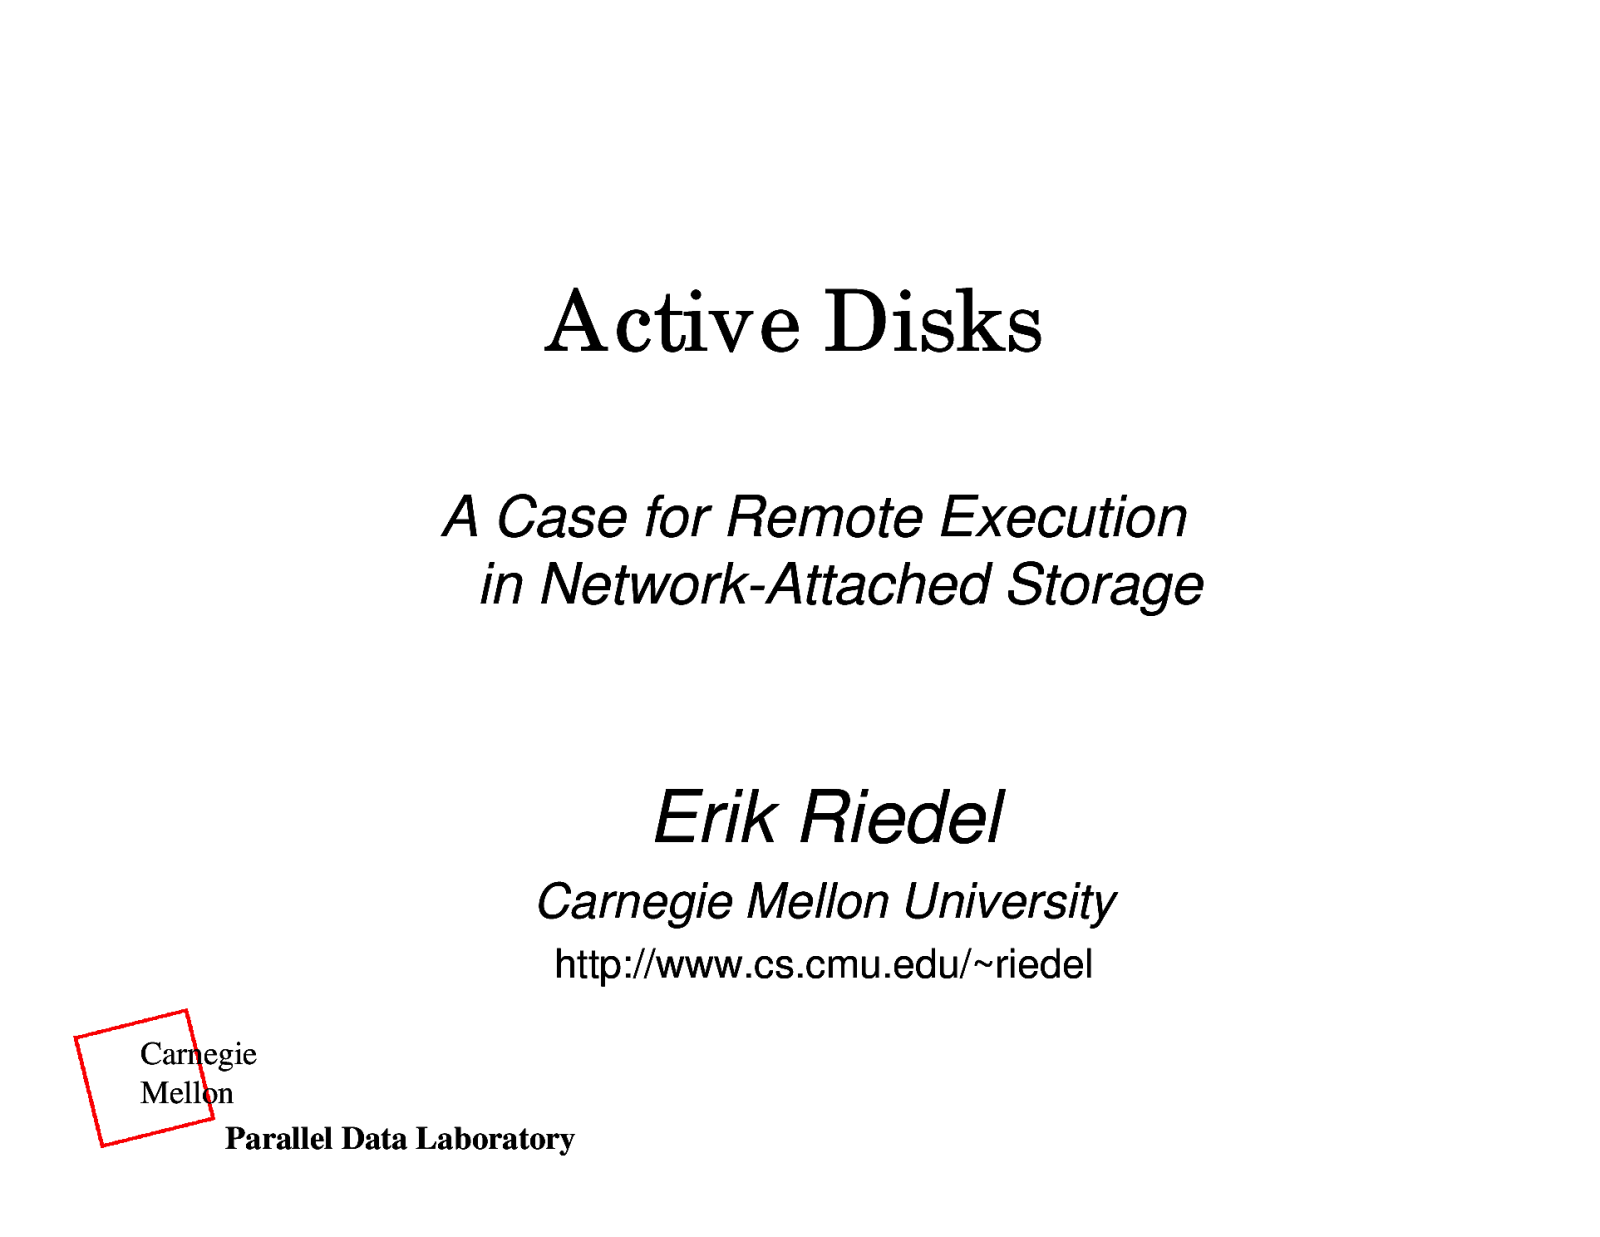 Active Disks - A Case for Remote Execution in Network-Attached Storage